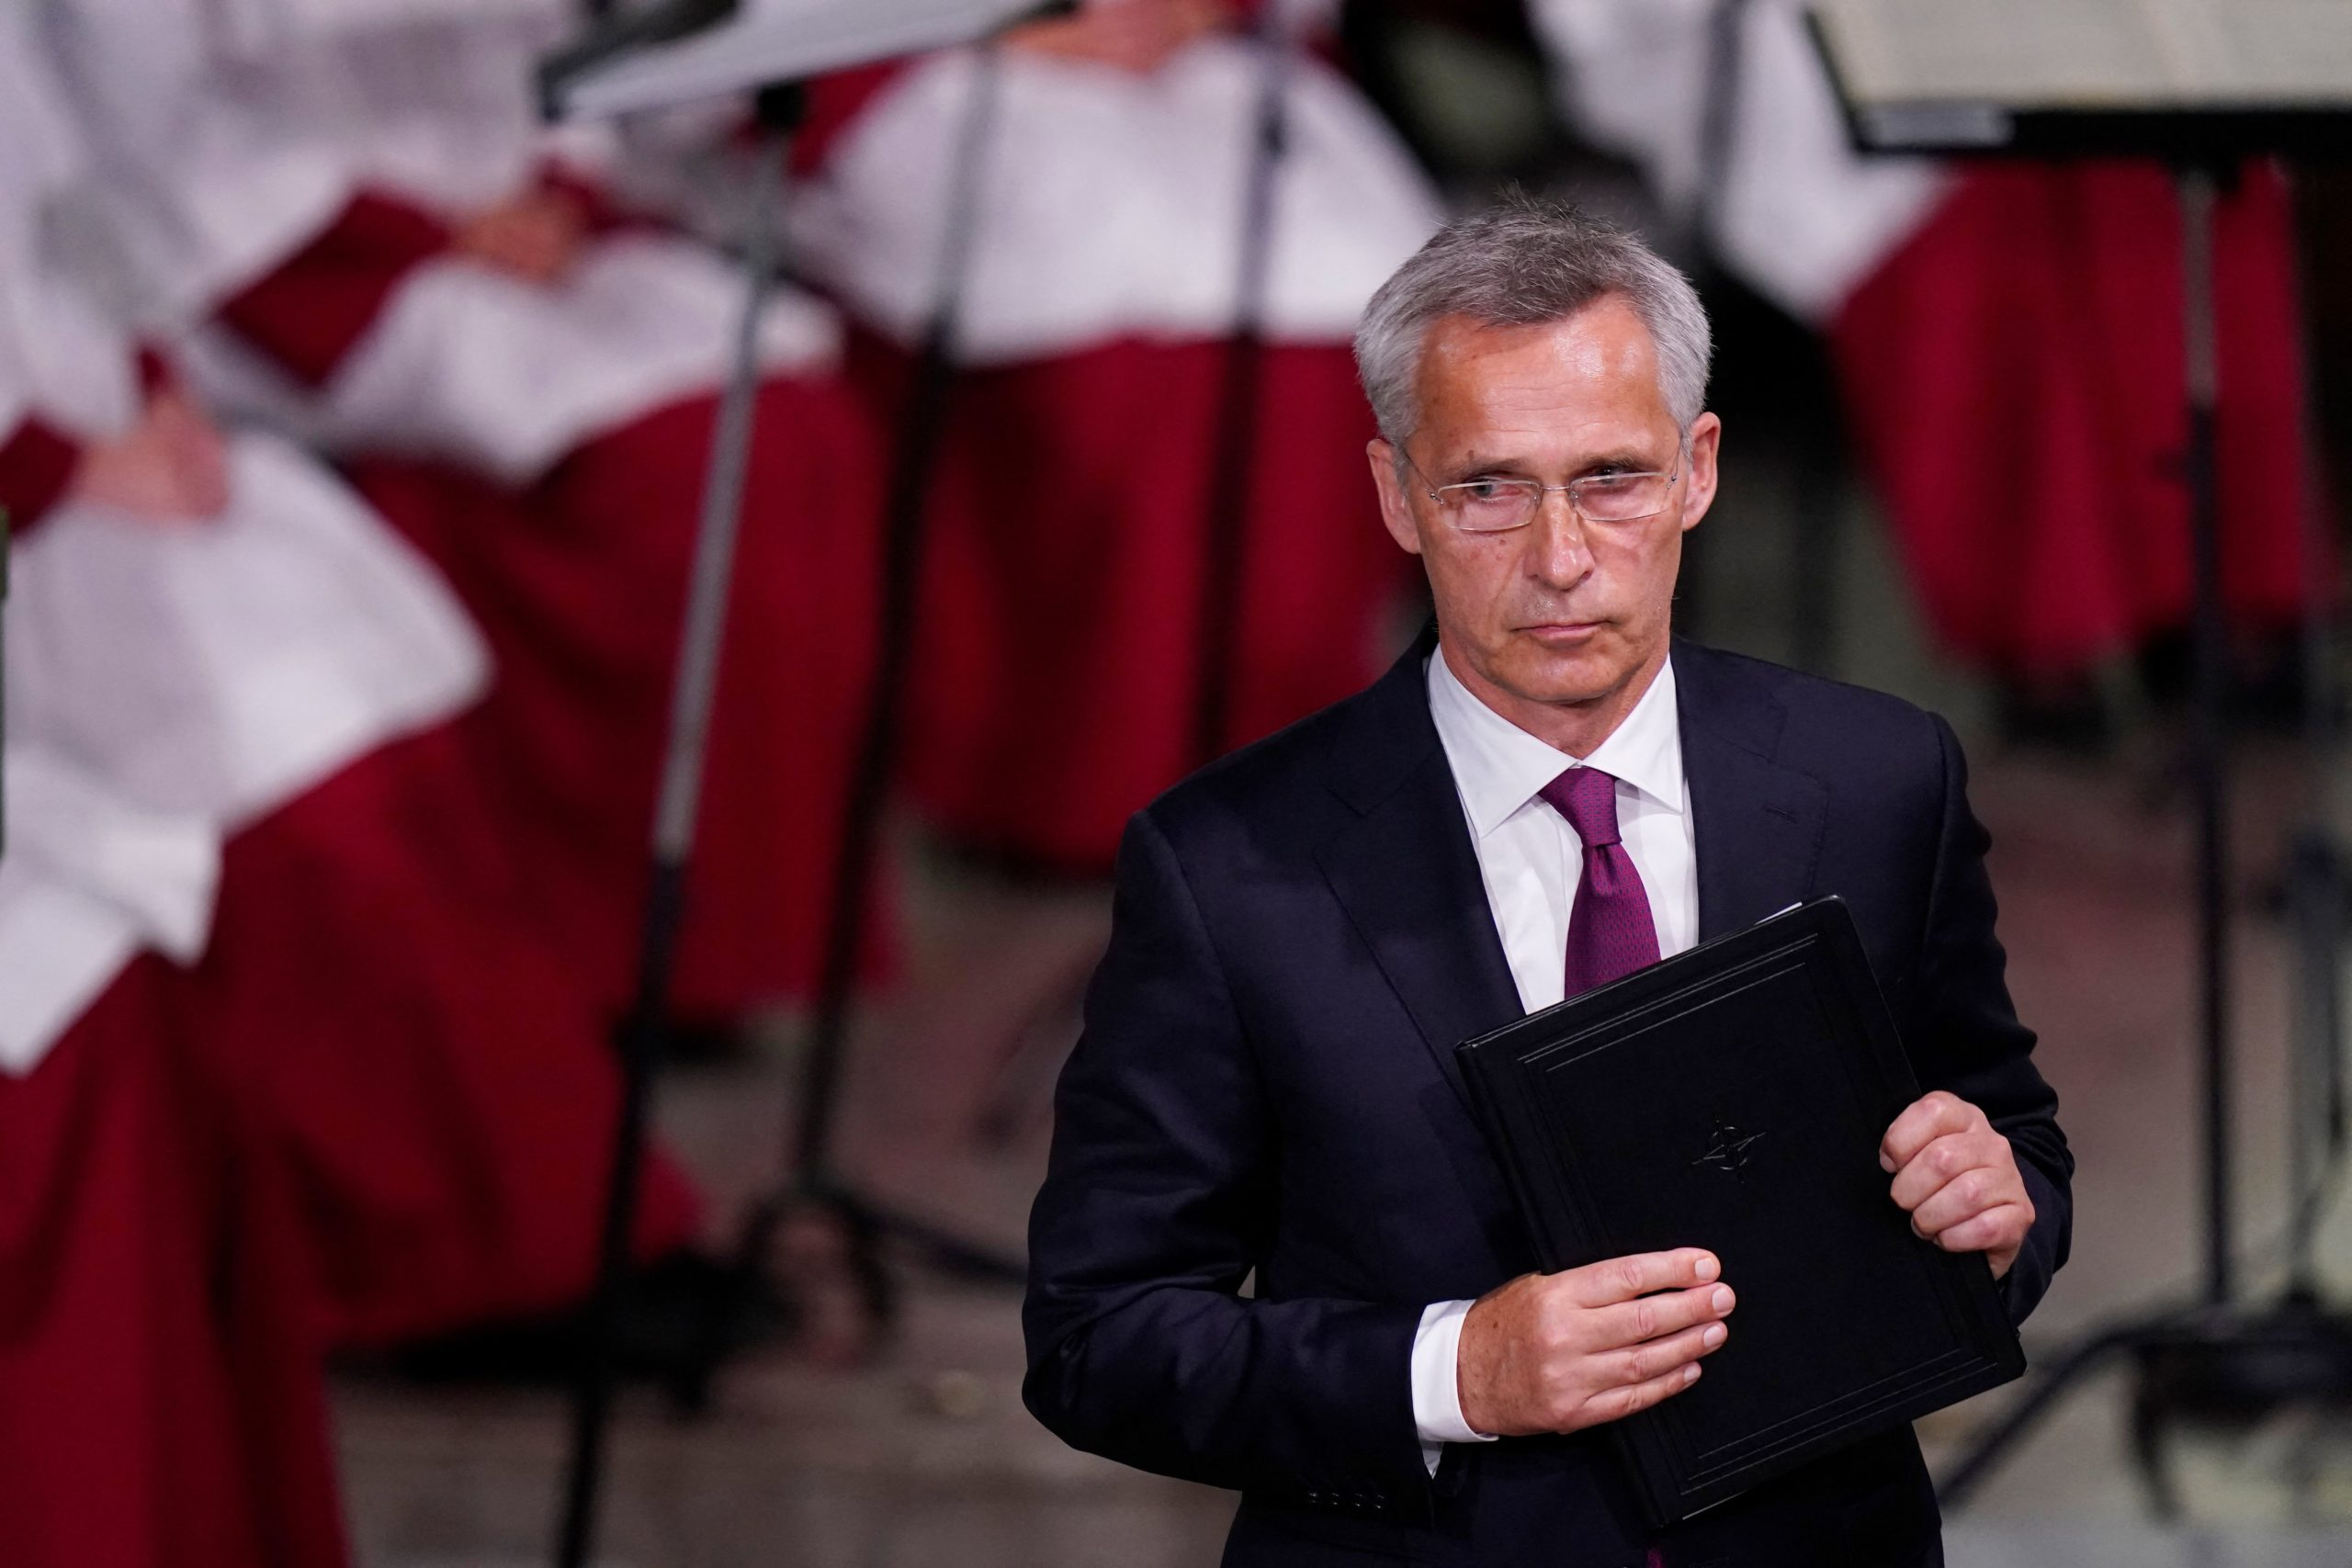 NATO Secretary general Jens Stoltenberg delivers a speech in July. (Torstein Be/NTB/AFP via Getty Images)